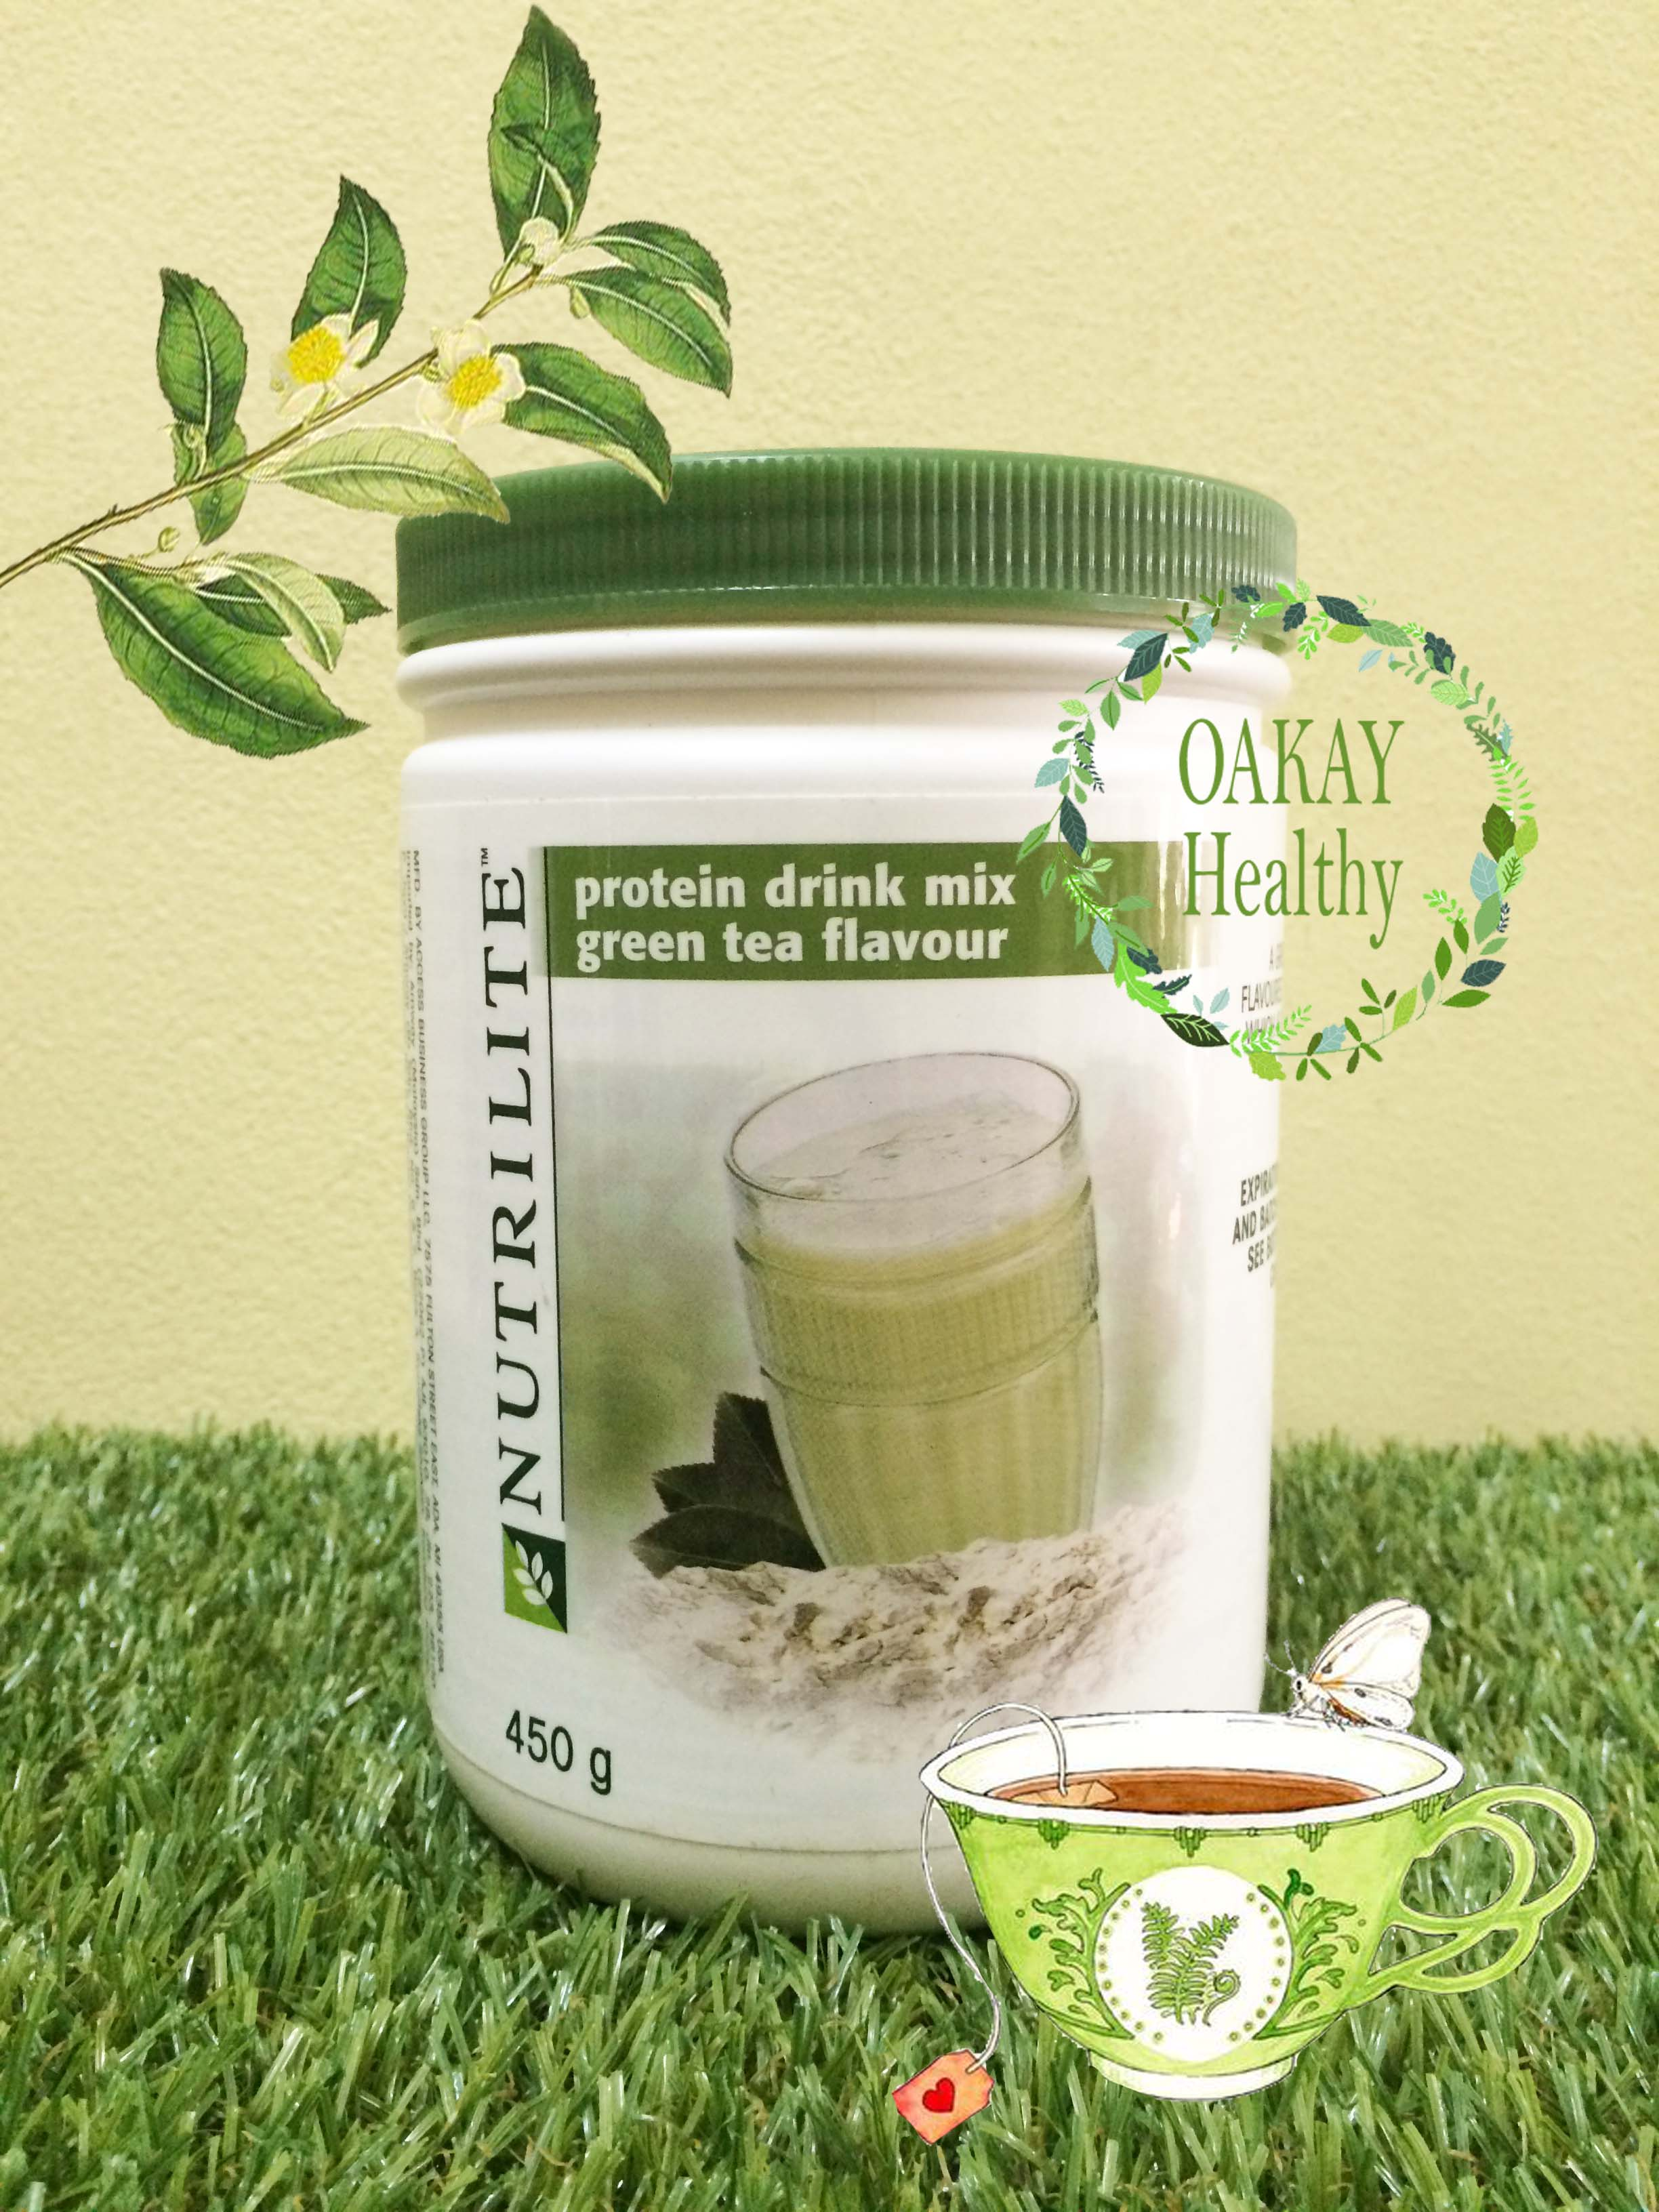 Nutrilite protein drink mix green tea oakayhealthy for Mixed drinks with green tea